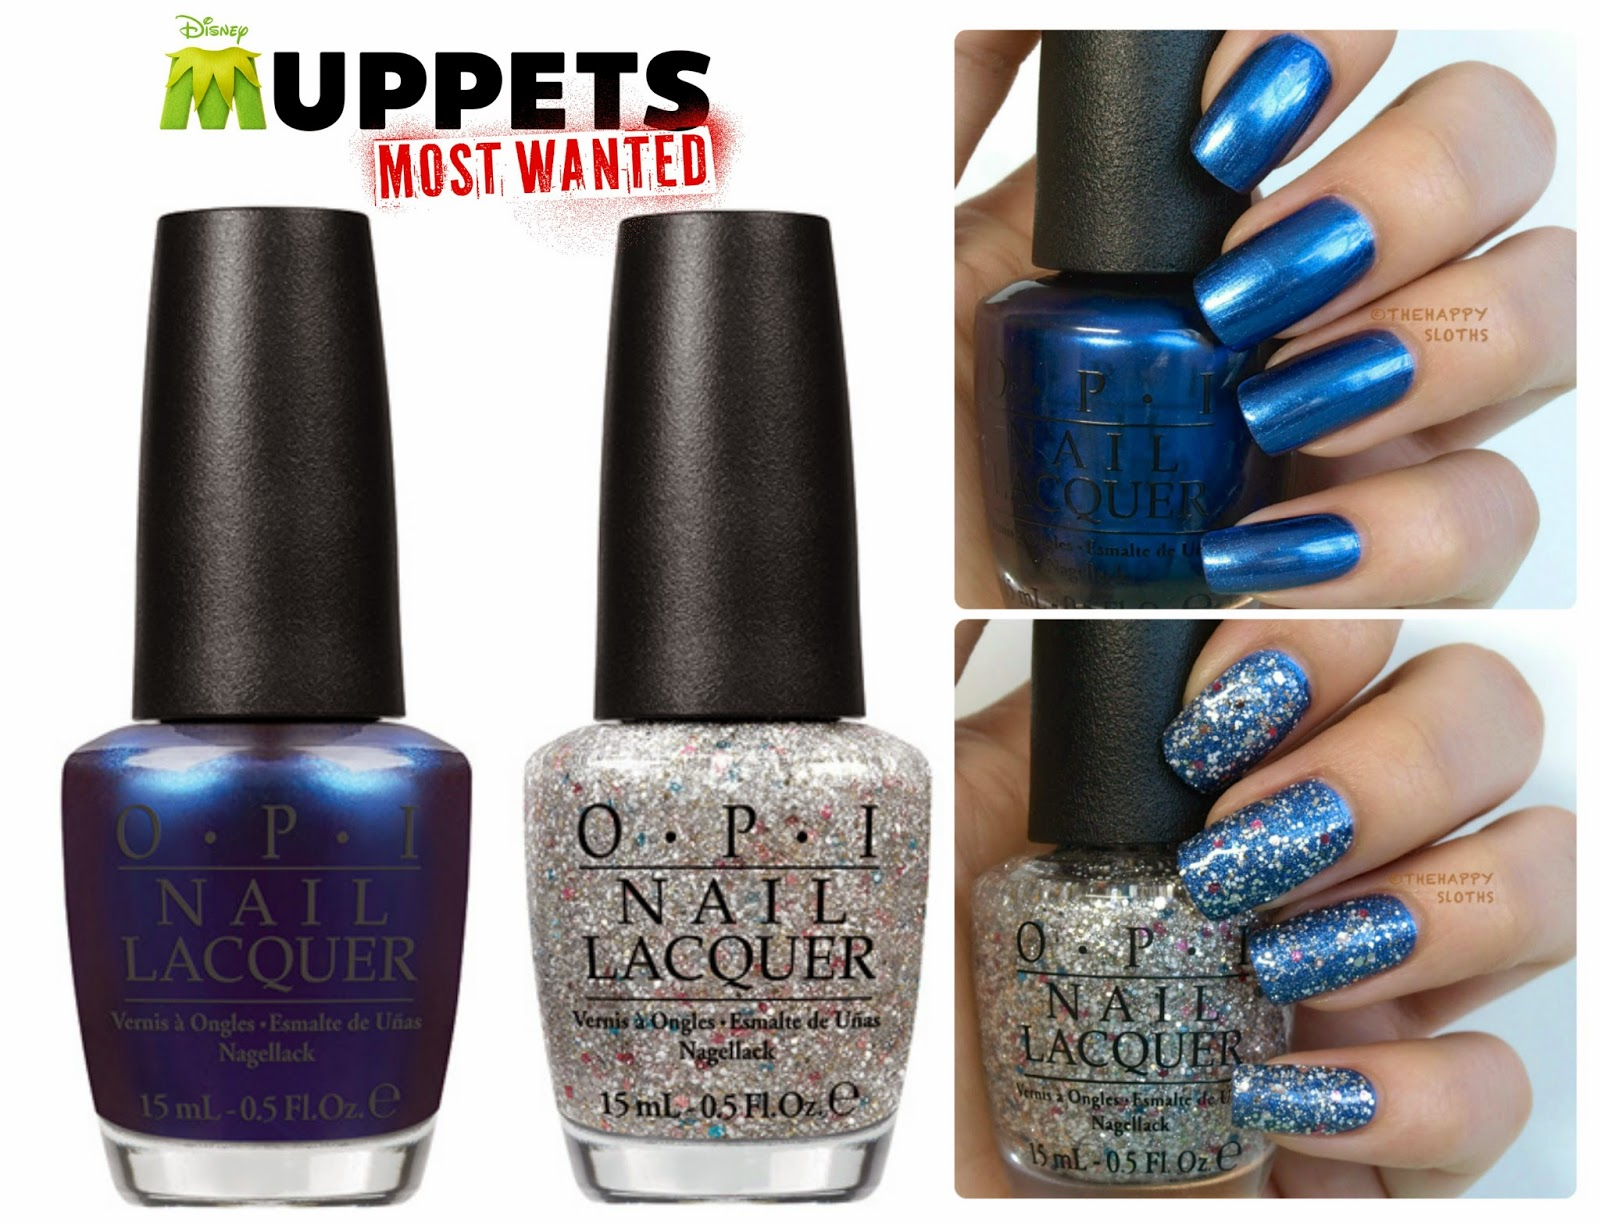 OPI Muppets Most Wanted Nail Polish Collection: Review and Swatches ...